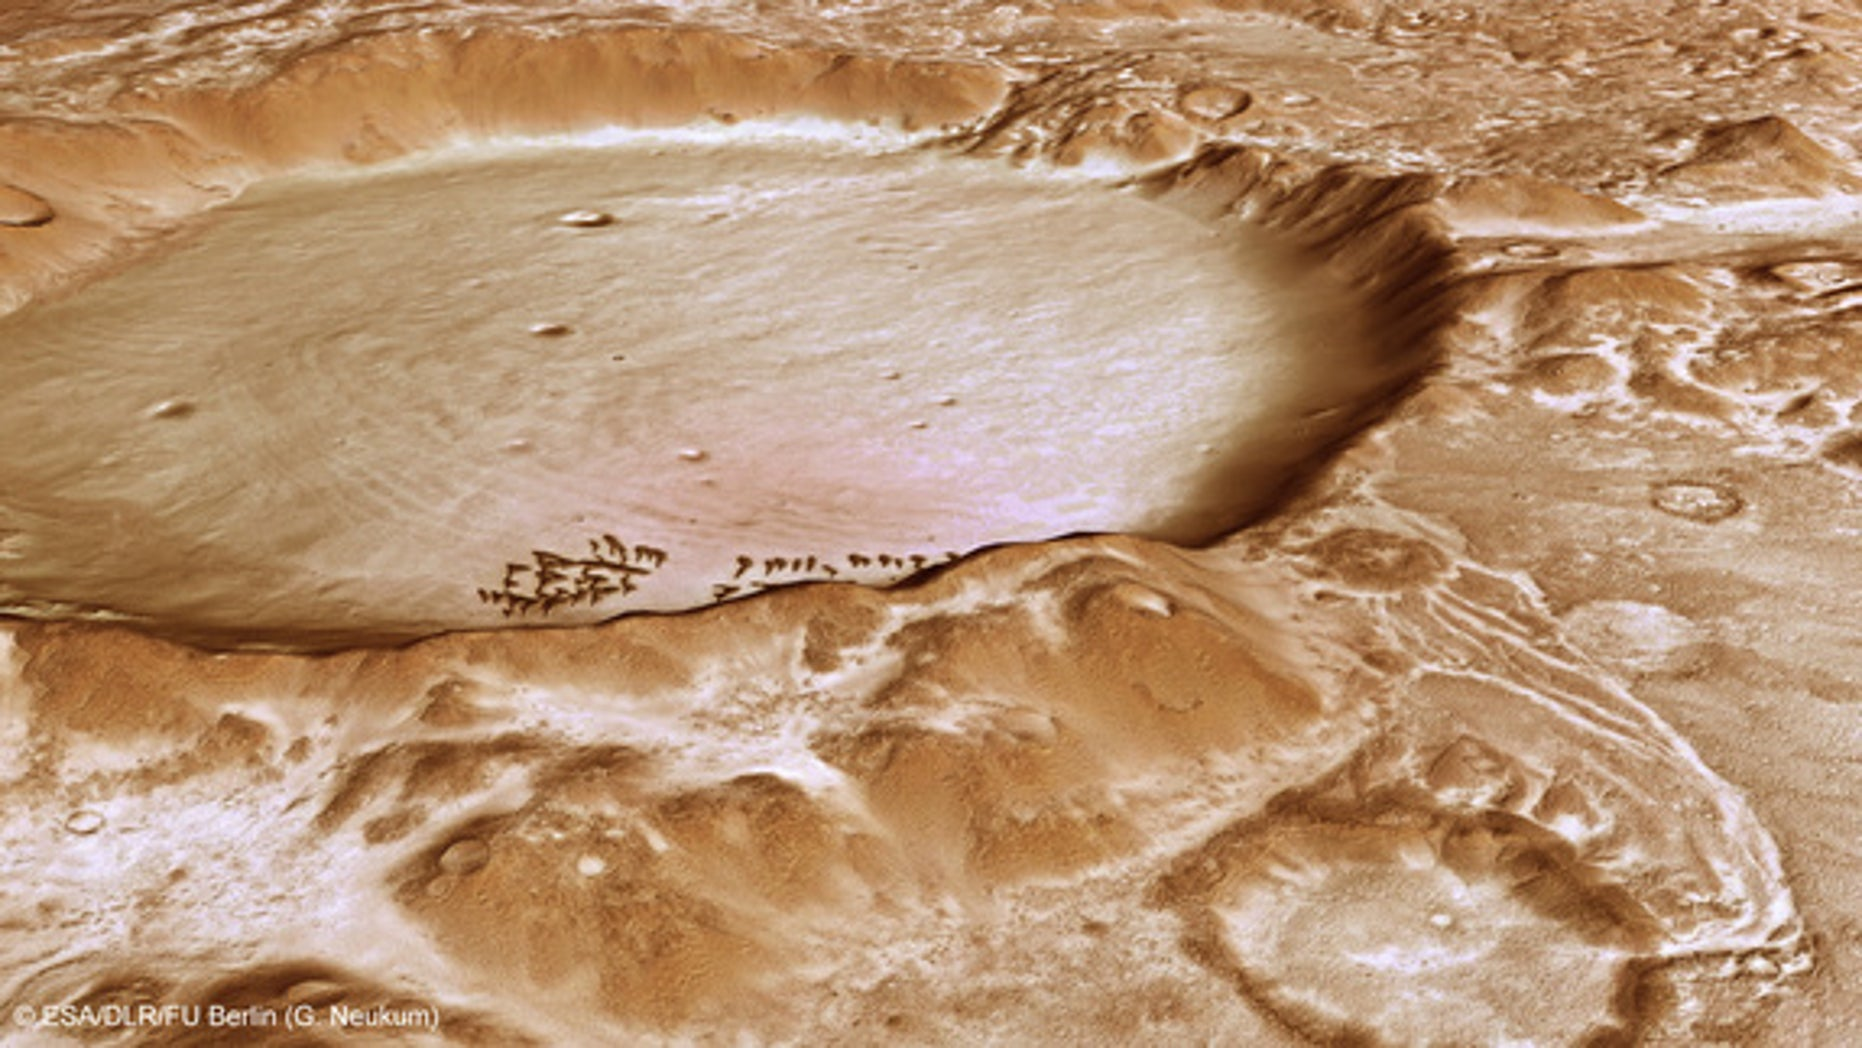 This computer-generated perspective view of Charitum Montes was created using data obtained from the High-Resolution Stereo Camera (HRSC) on ESA's Mars Express. The image shows the large breach in the northern wall of the crater, located near t